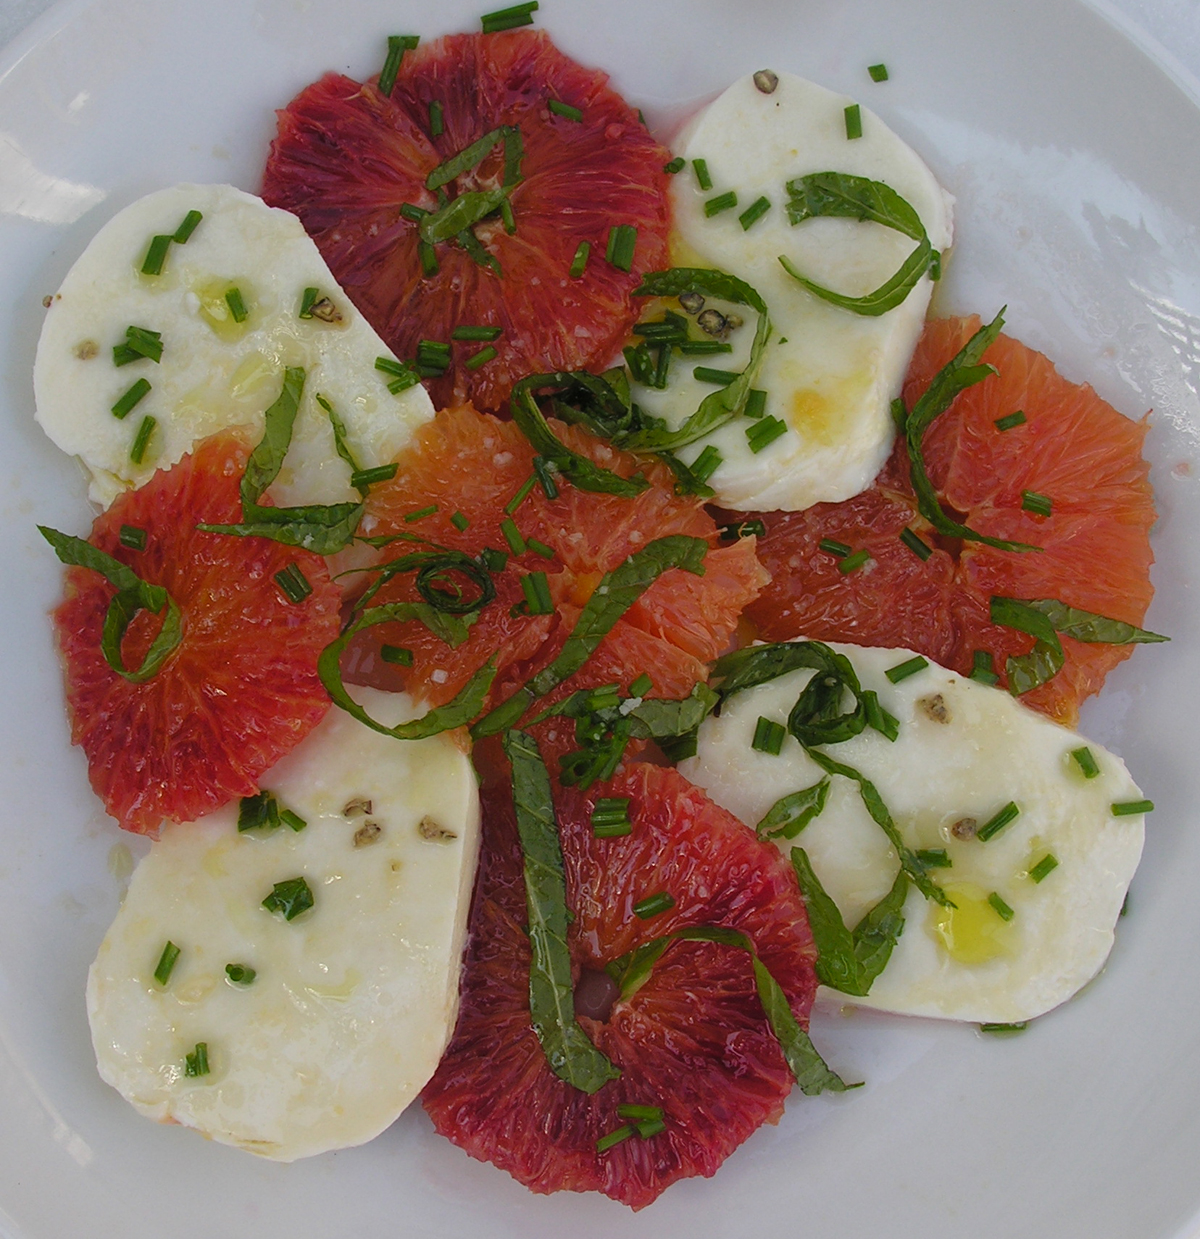 Winter Insalata with Ovoline Mozzarella and Citrus